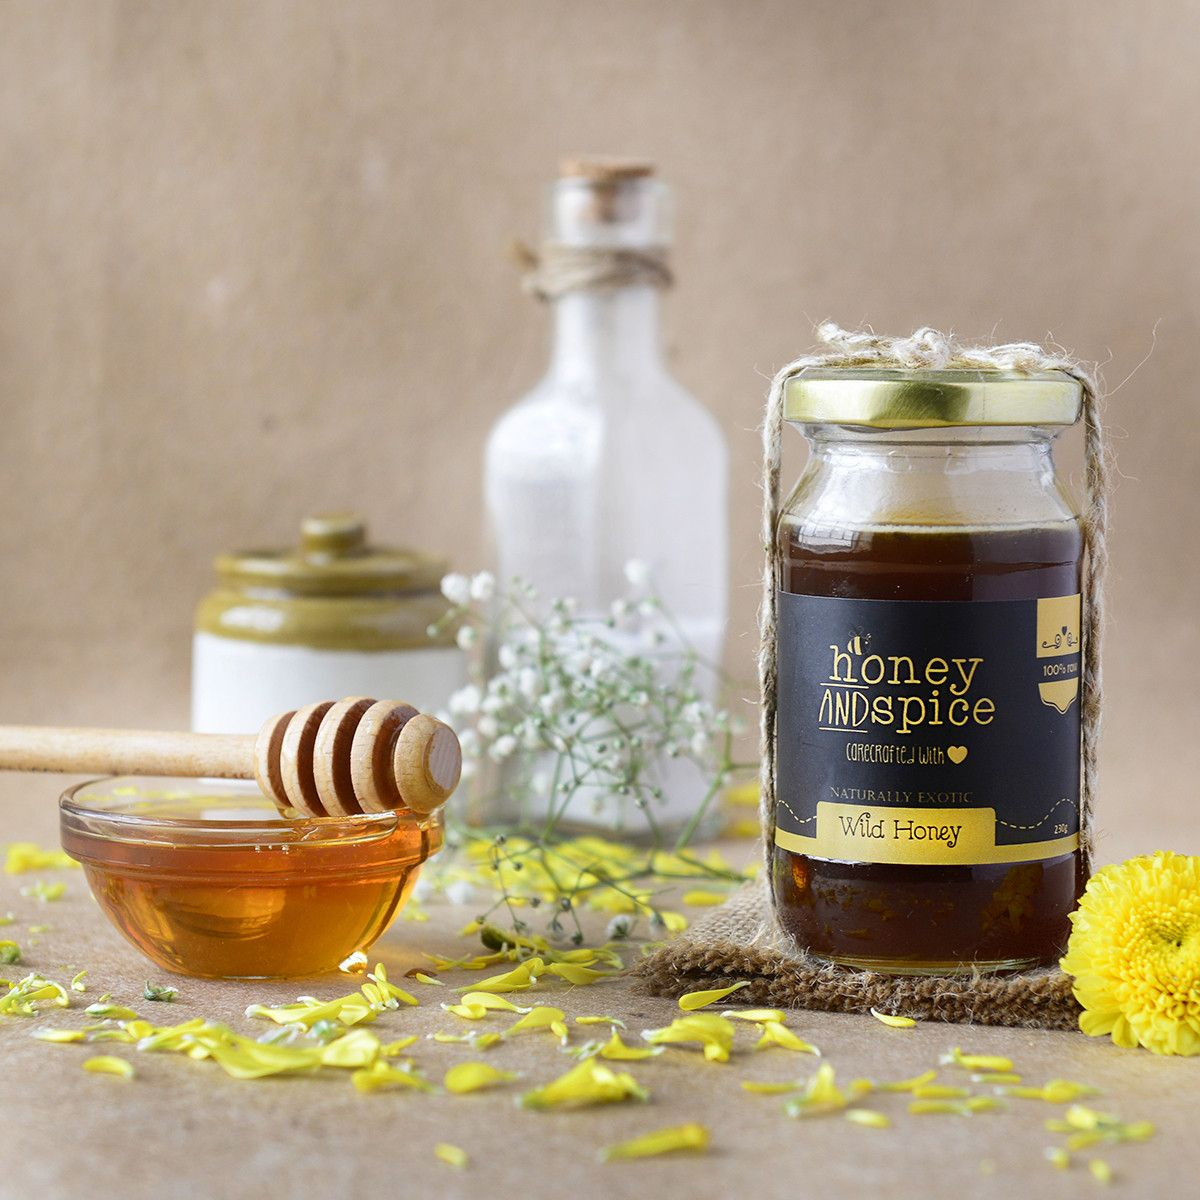 Wild Homey. Collected from the forests of India by tribal Honey hunters, this Honey is extremely unique and exotic. Best Upto 12 months. https://www.qtrove.com/collections/preserves/products/wild-honey-1